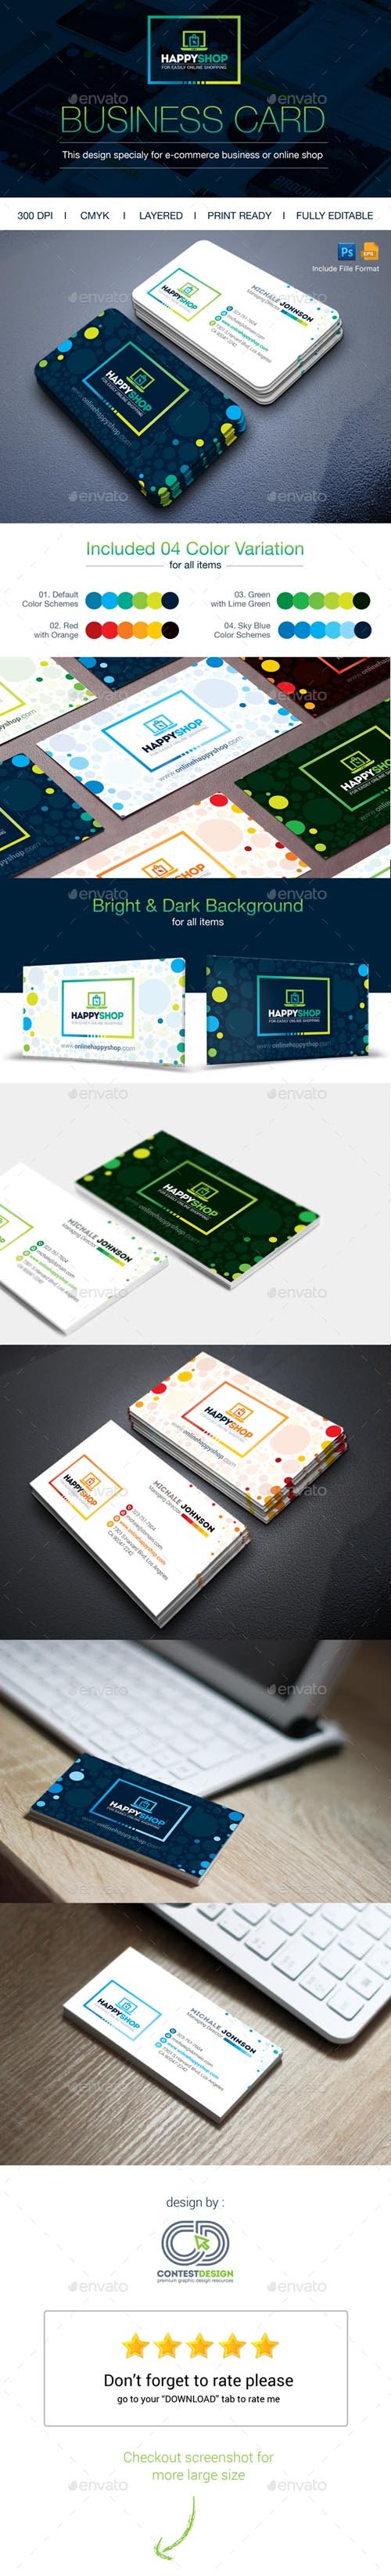 HappyShop : Business Card 14443456